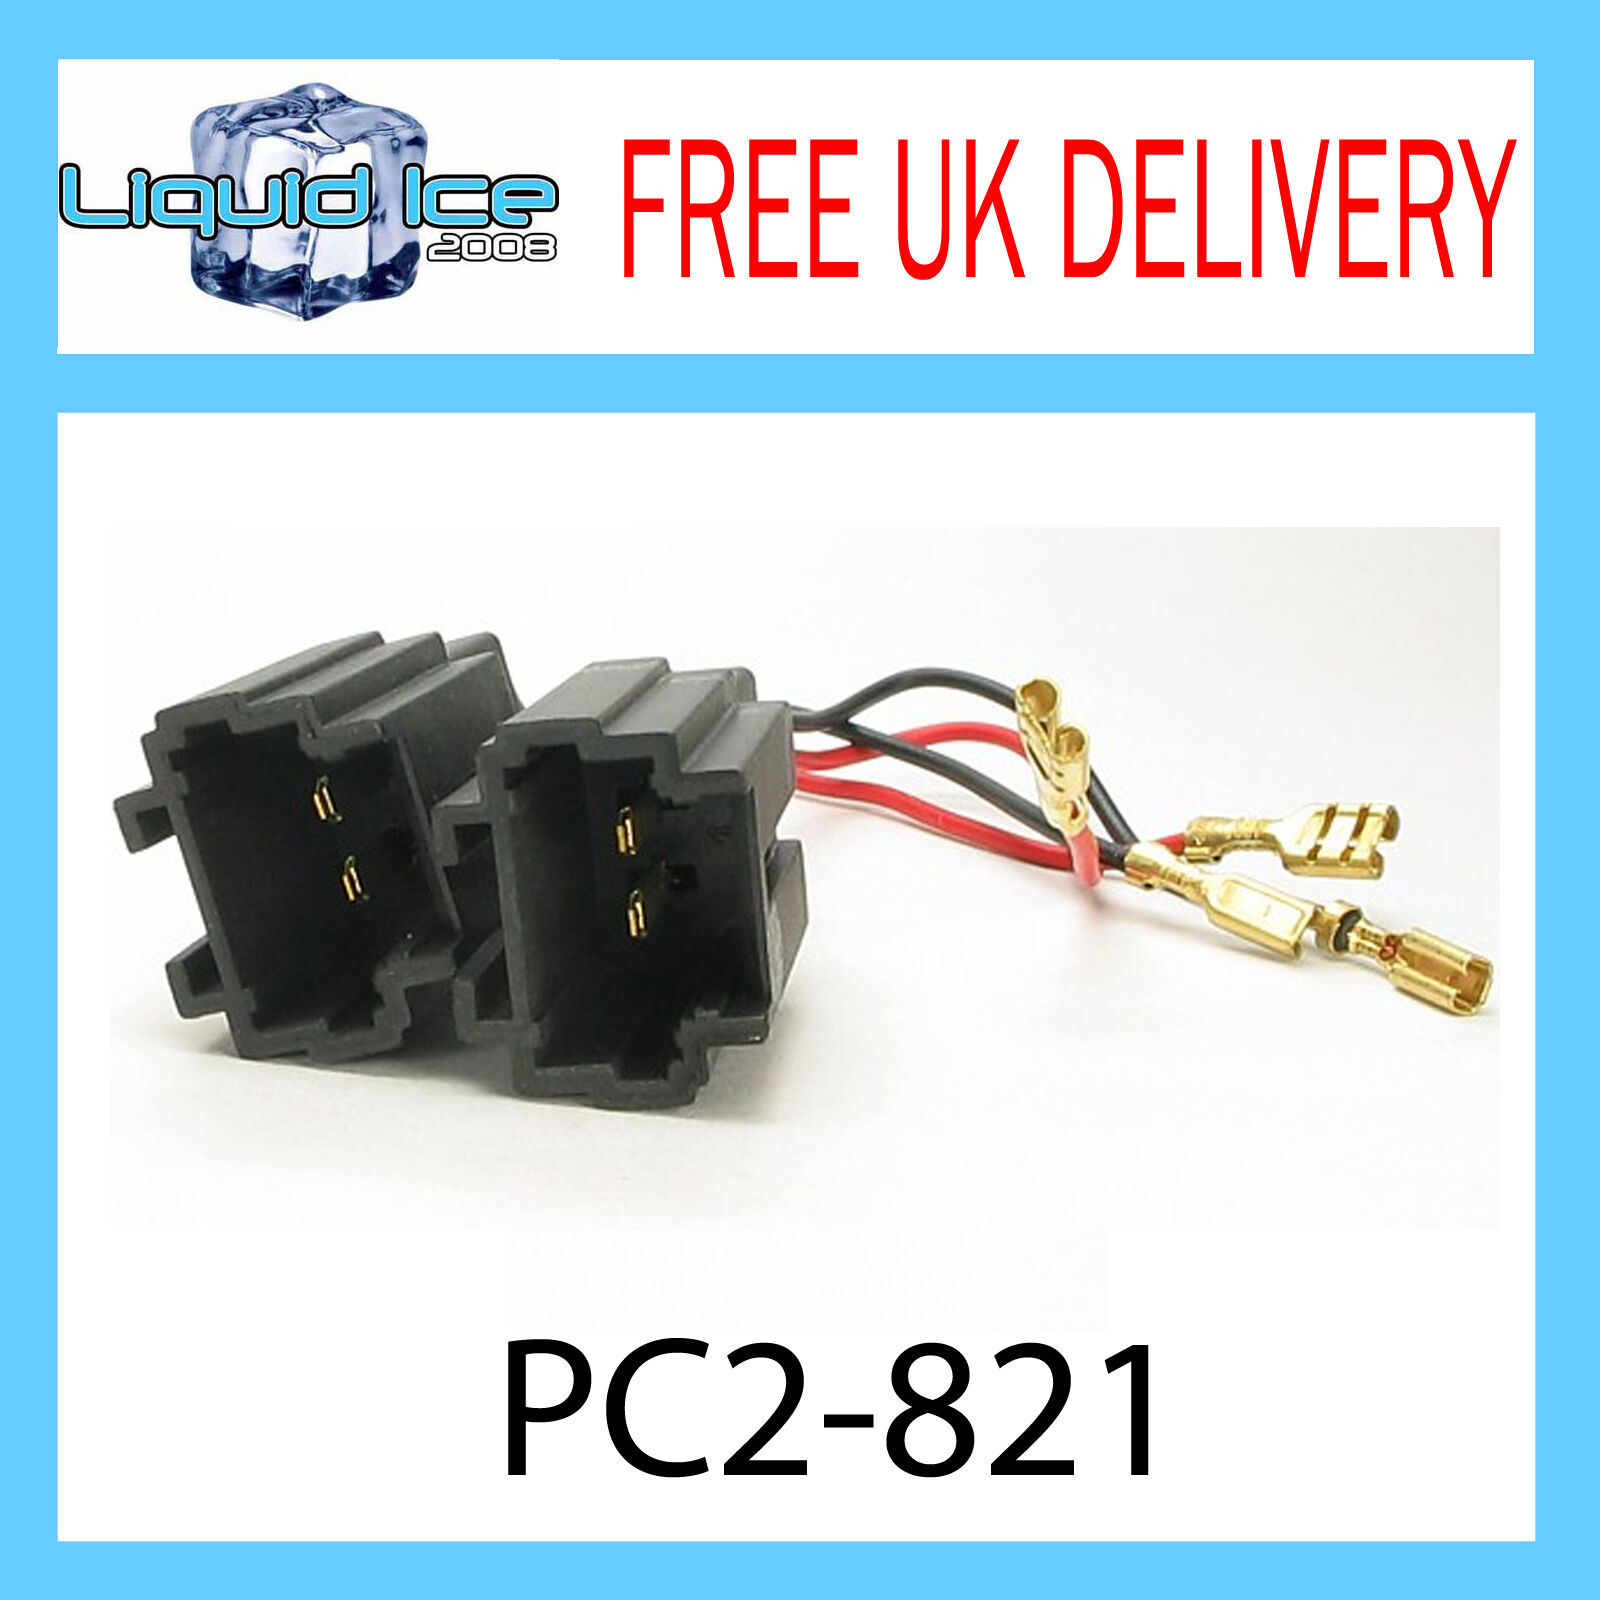 Pc2-821 PEUGEOT 206 Altoparlante Adattatore Lead Stereo Cavo headnuit ct55-pe02